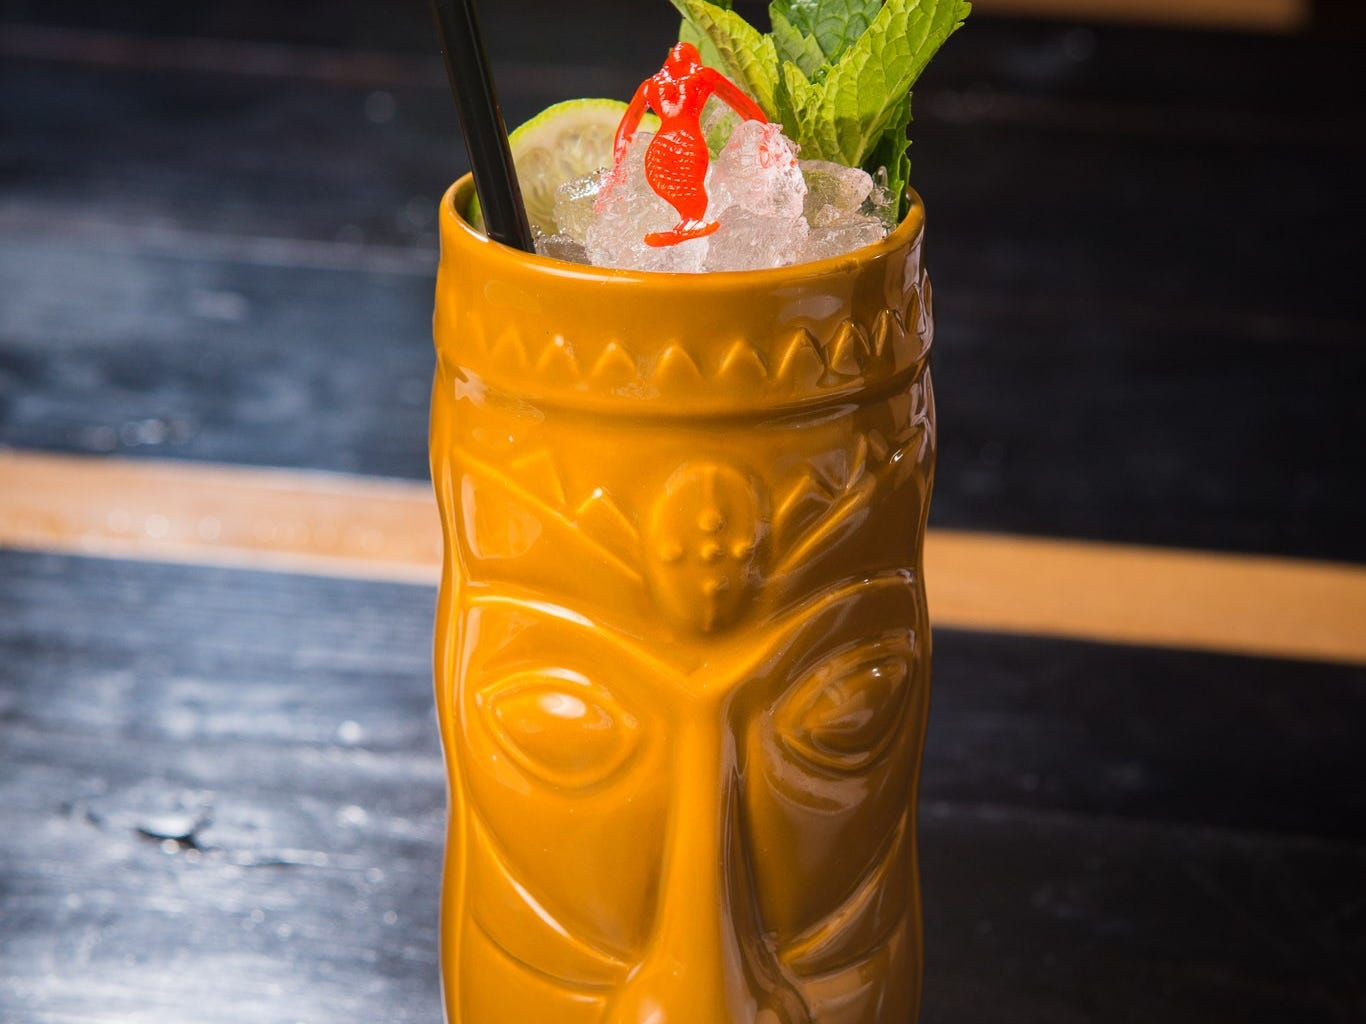 Just because it's autumn doesn't mean Tiki cocktails are out.